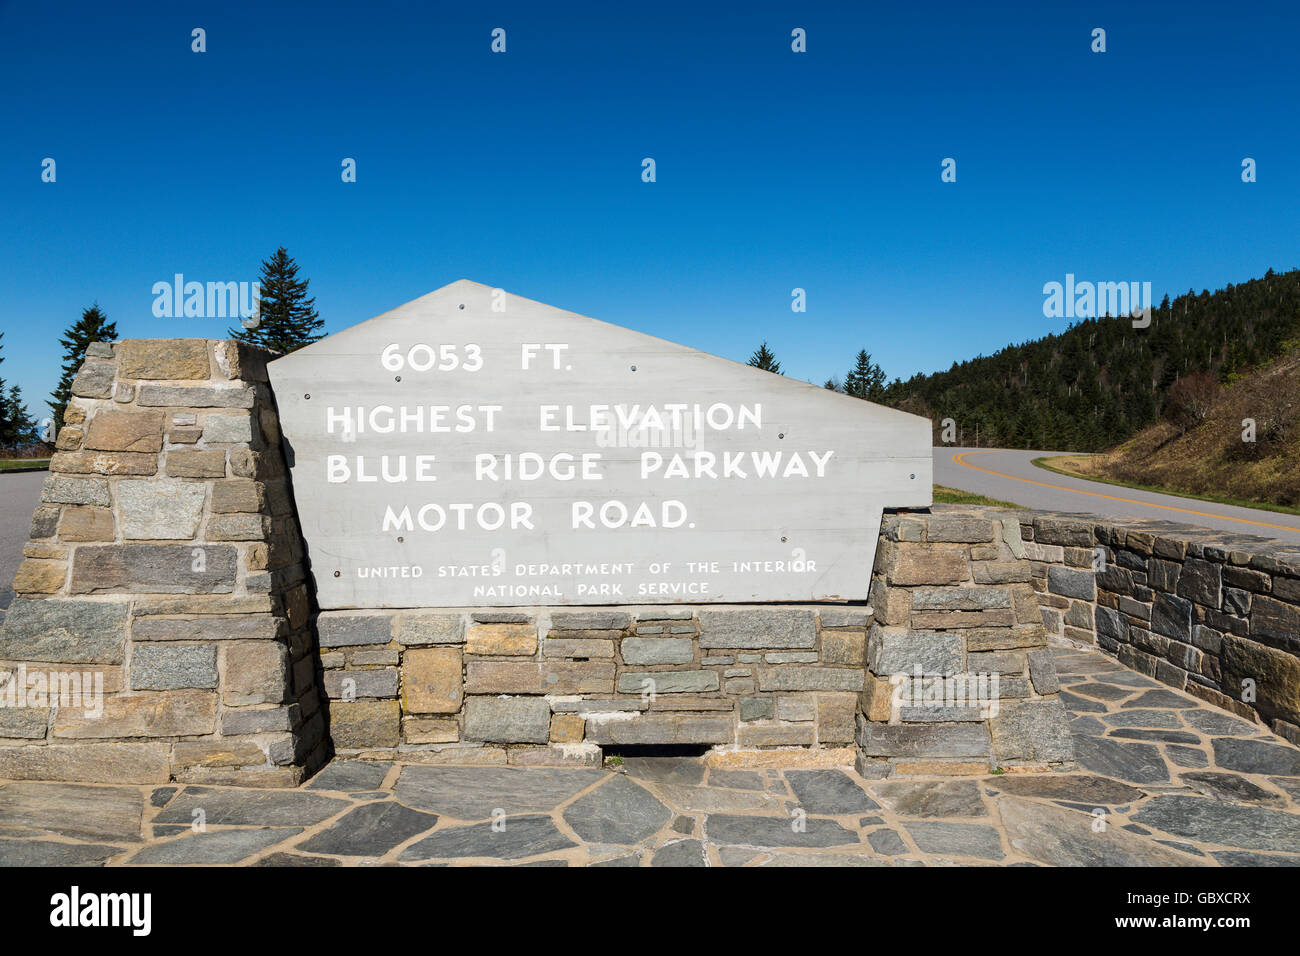 Highest elevation sign post on Blue Ridge Parkway road, Asheville, NC, USA - Stock Image